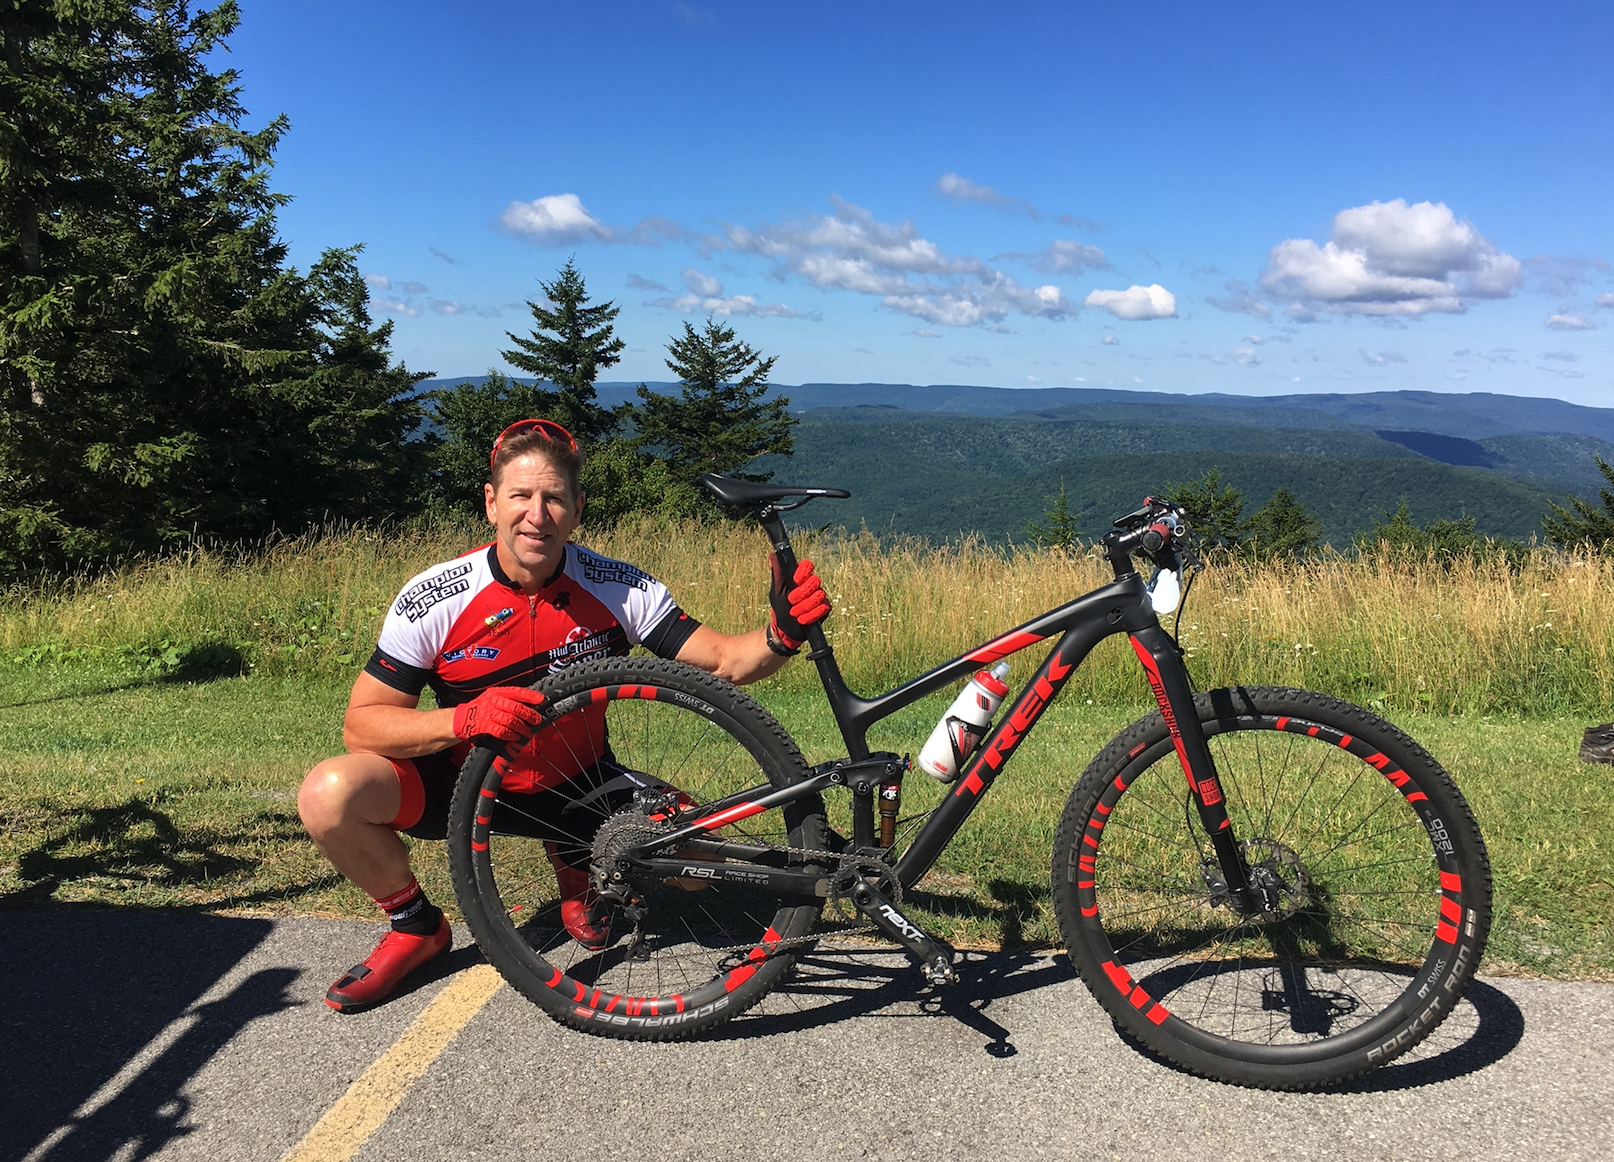 Are you a busy professional trying to stay fit and maintain a work-life balance? Is it hard to keep in shape, relieve stress, and exercise in a way that's enjoyable? Does your current fitness routine leave you feeling bored or in pain? Why mountain biking might be your executive fitness answer.